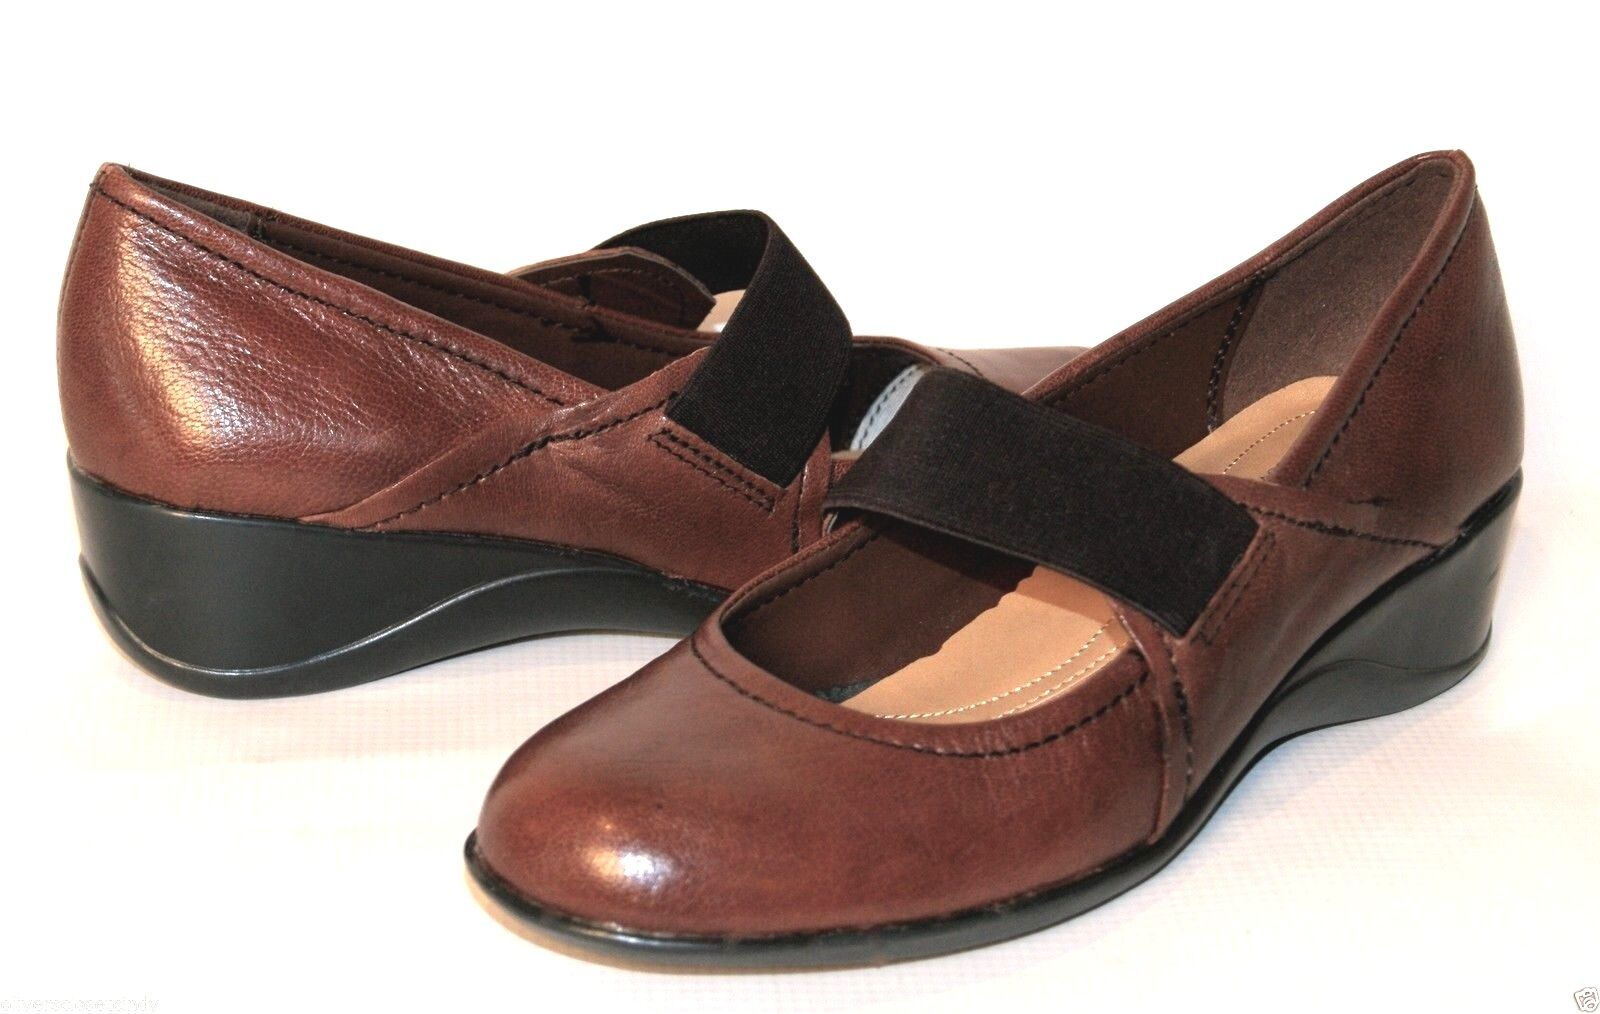 NATURALIZER Ande Dark Brown Leather Wedge Heel shoes Sz 8 Retails  79  NEW